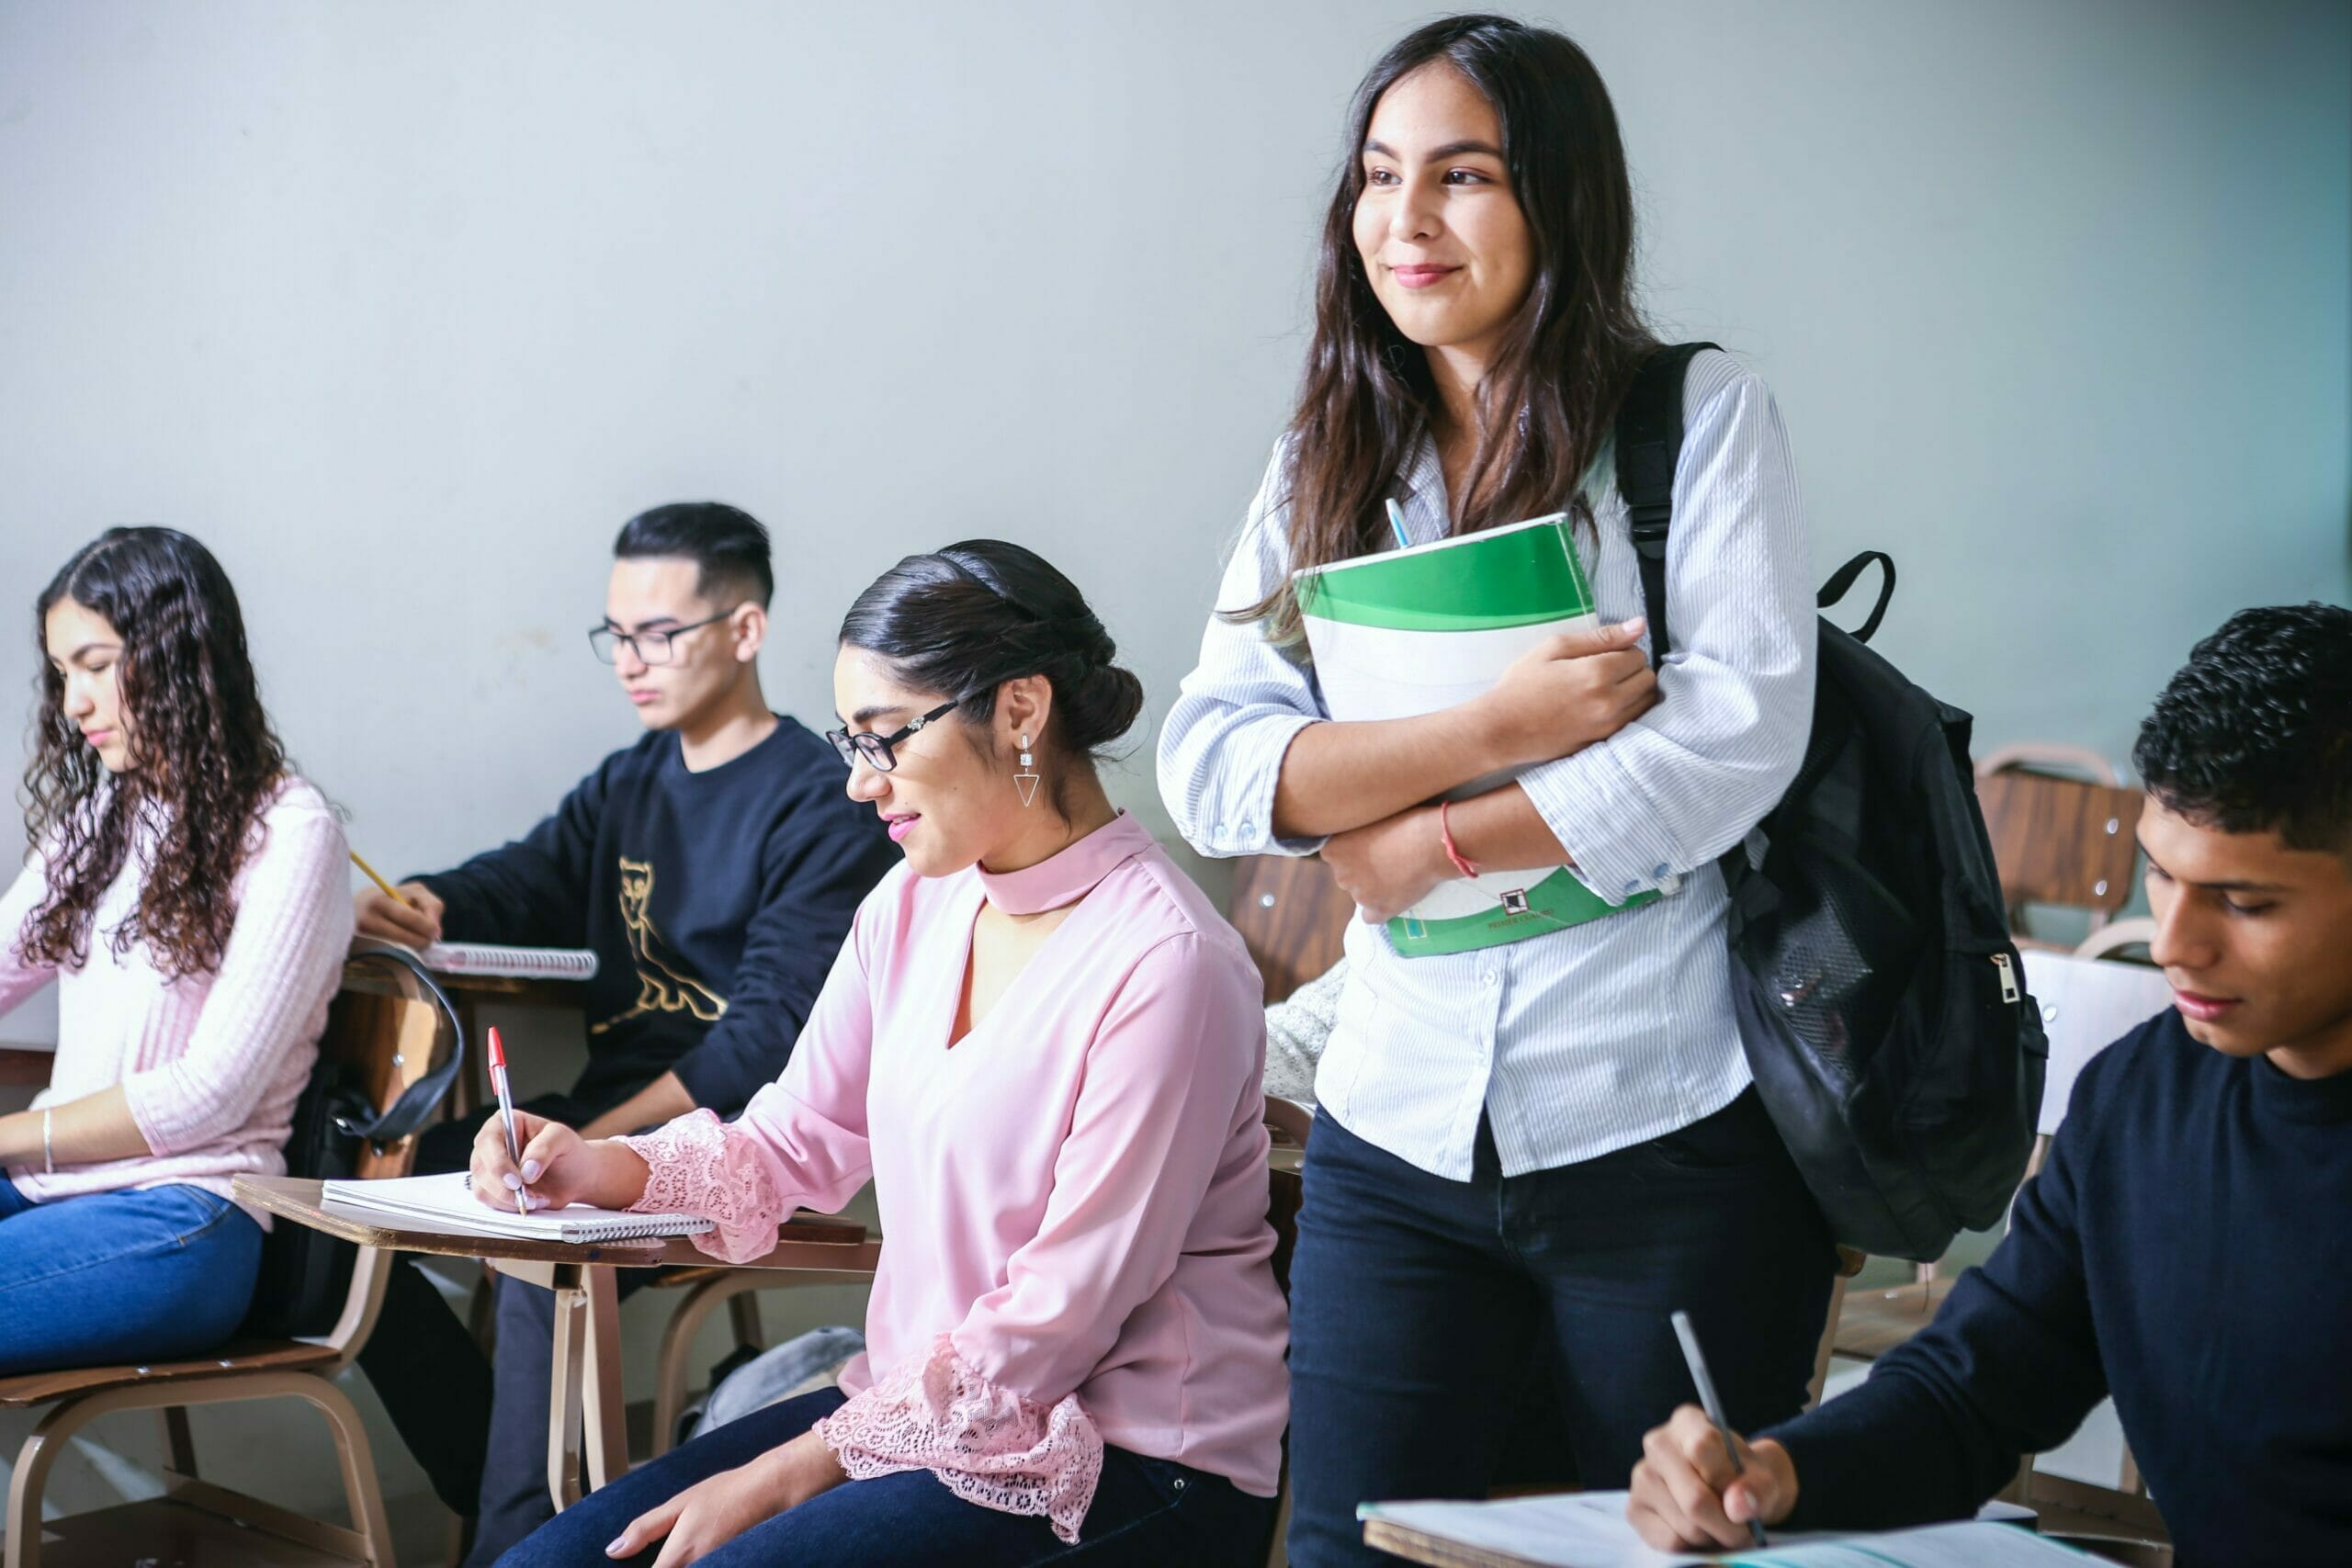 How to Be Confident in School: 7 Life-Changing Tips via @allamericanatlas